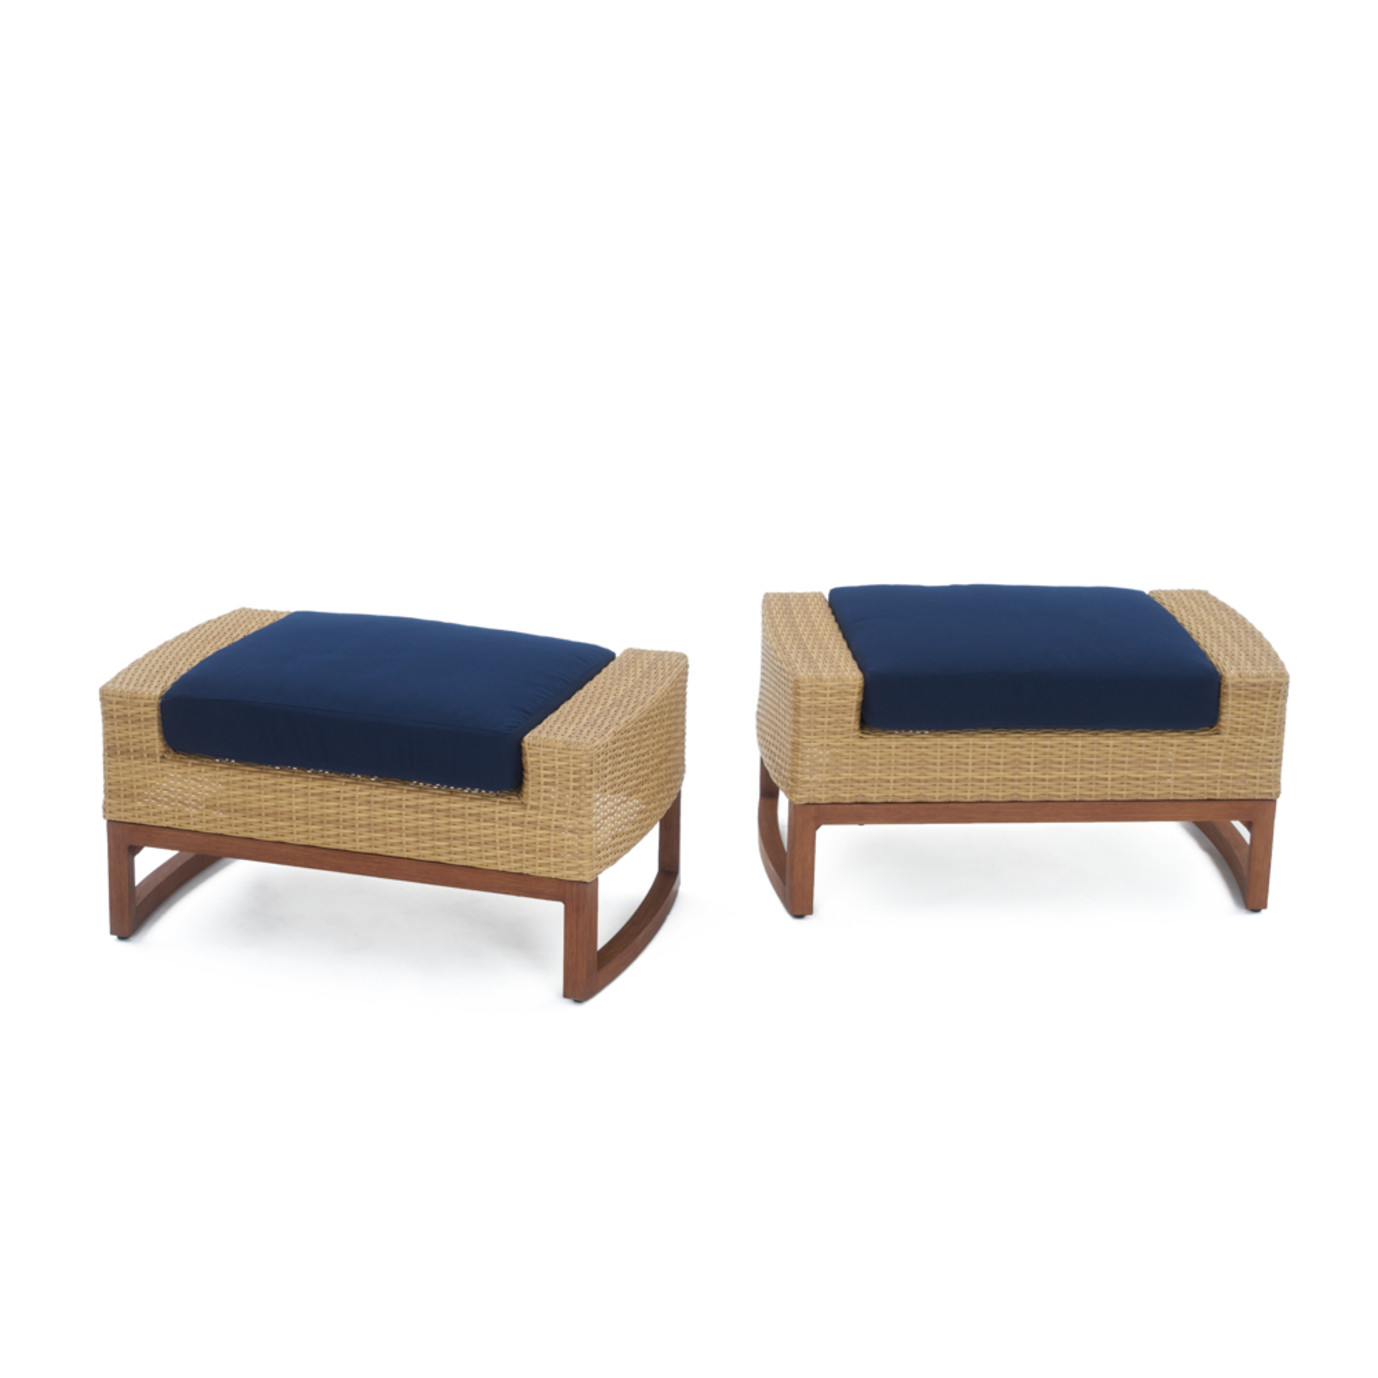 Mili™ 5pc Club Chair & Ottoman Set - Navy Blue